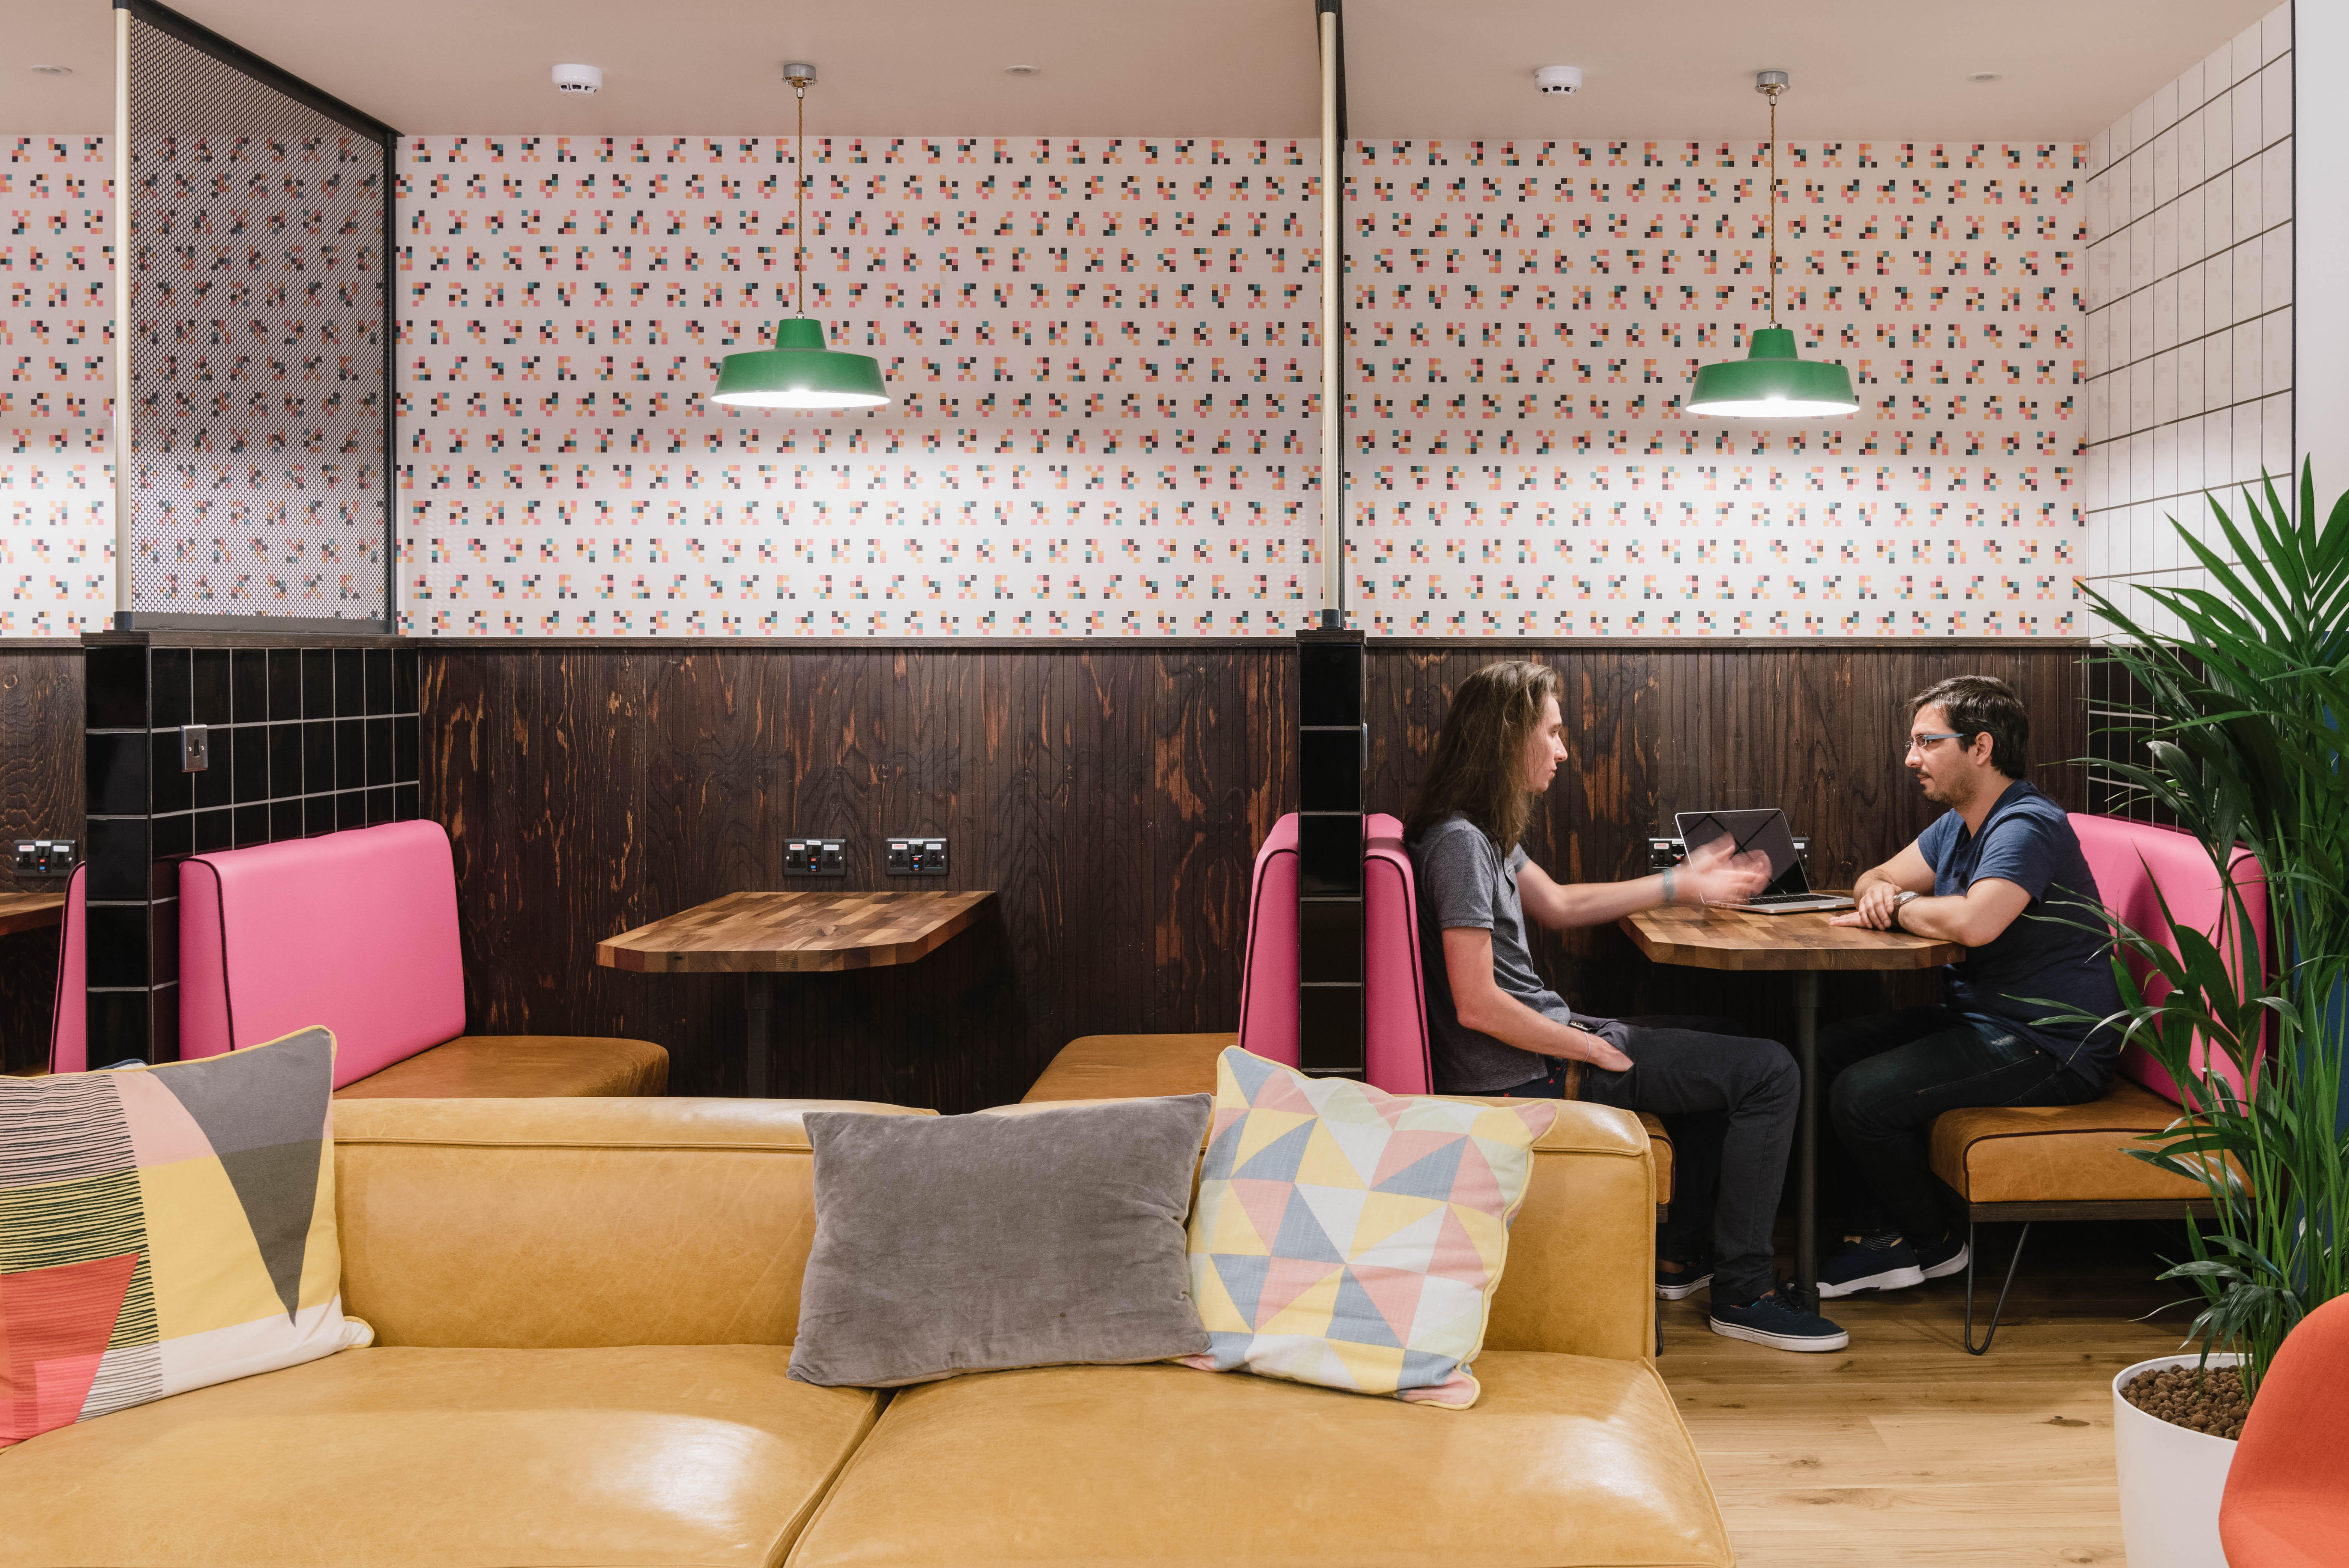 Meeting Booth WeWork 33 Queen St London 020 3695 7895